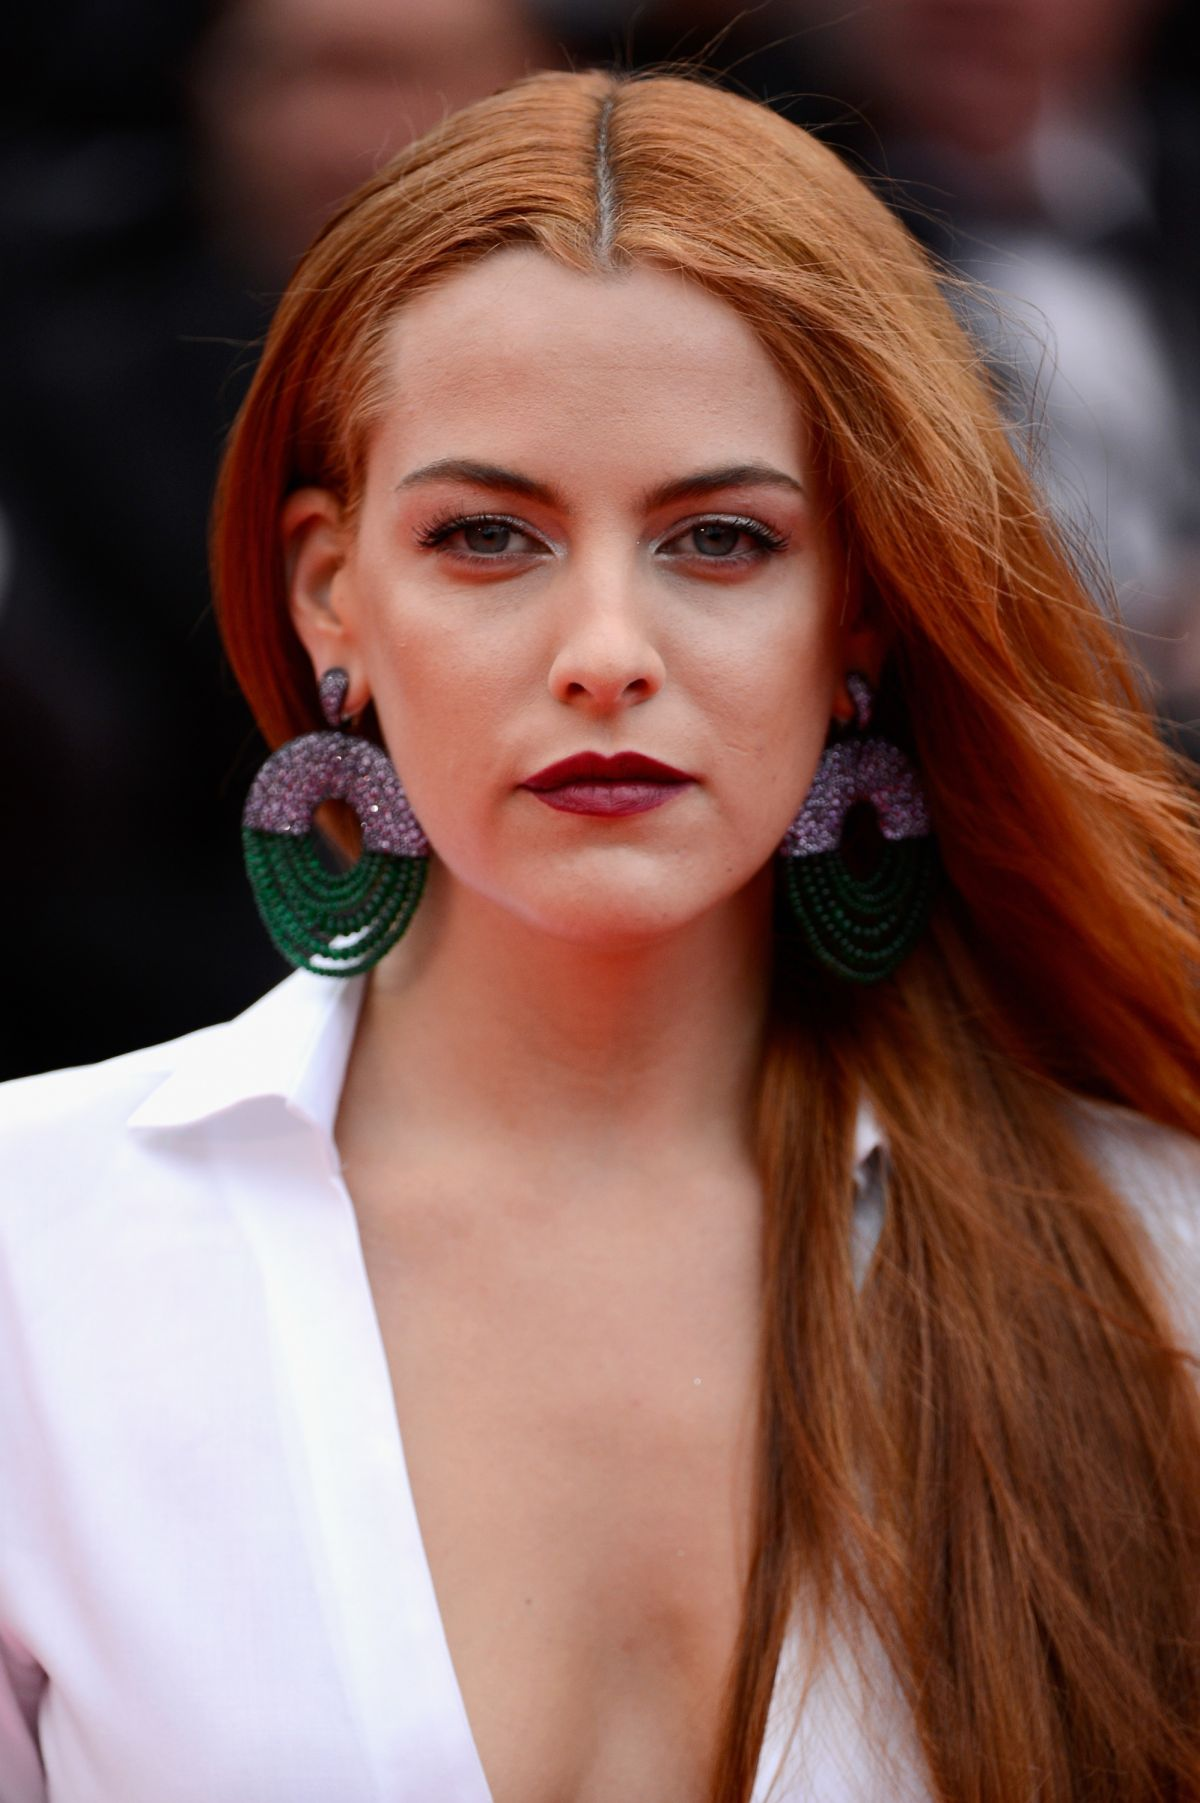 Riley Keough At 'Foxcatcher' Cannes Premiere - Celebzz ...